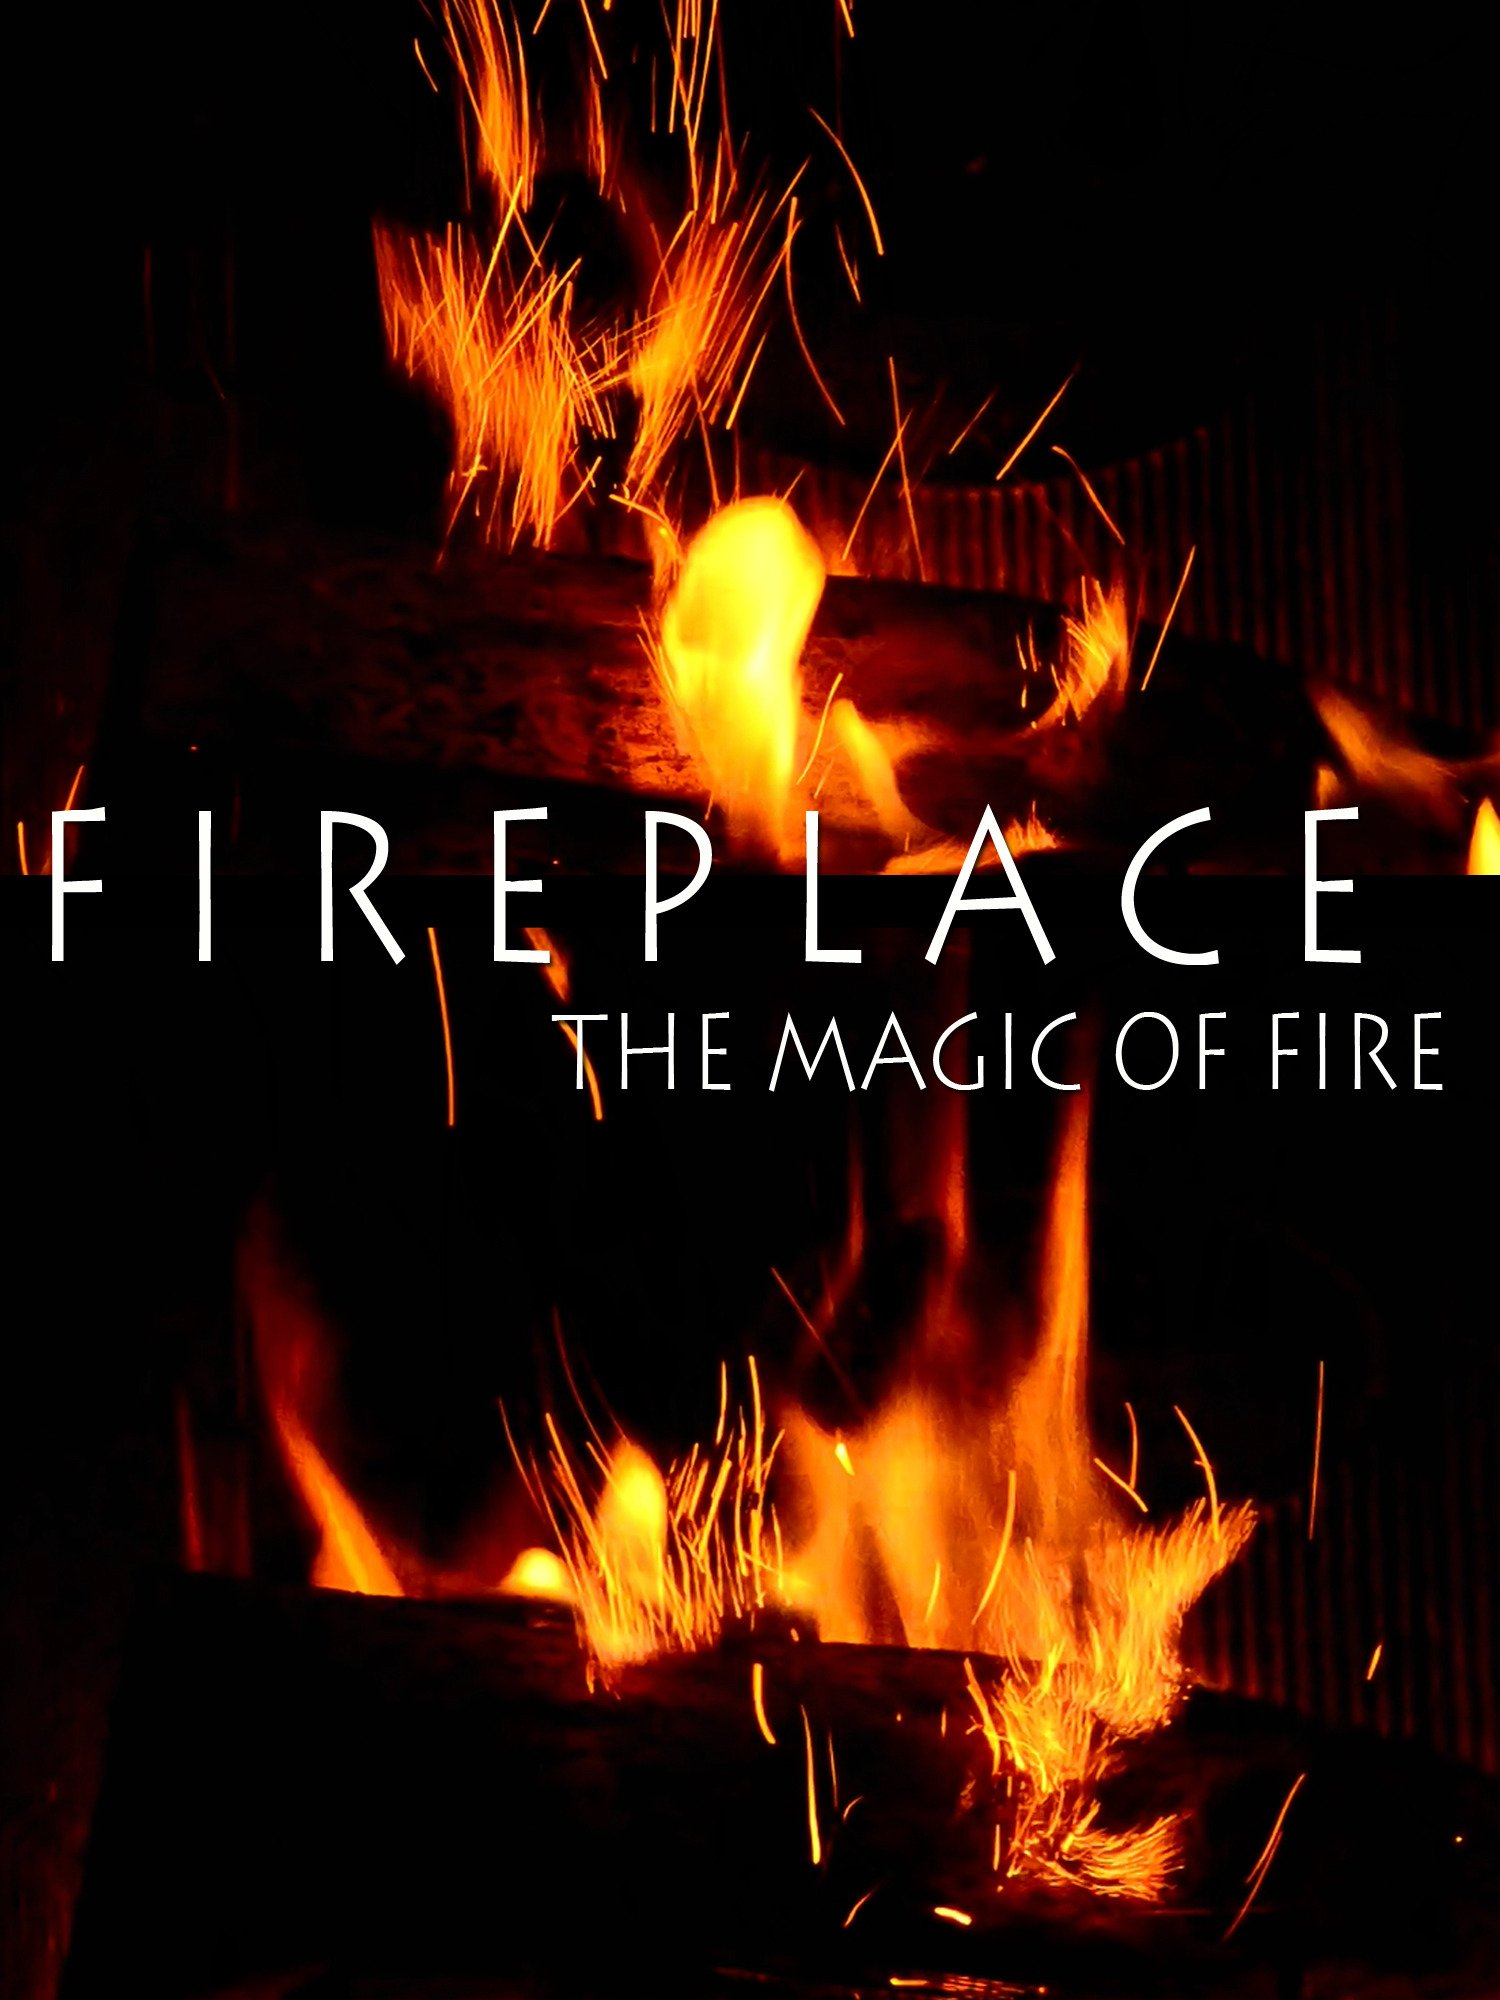 Fireplace. The Magic of Fire on Amazon Prime Instant Video UK